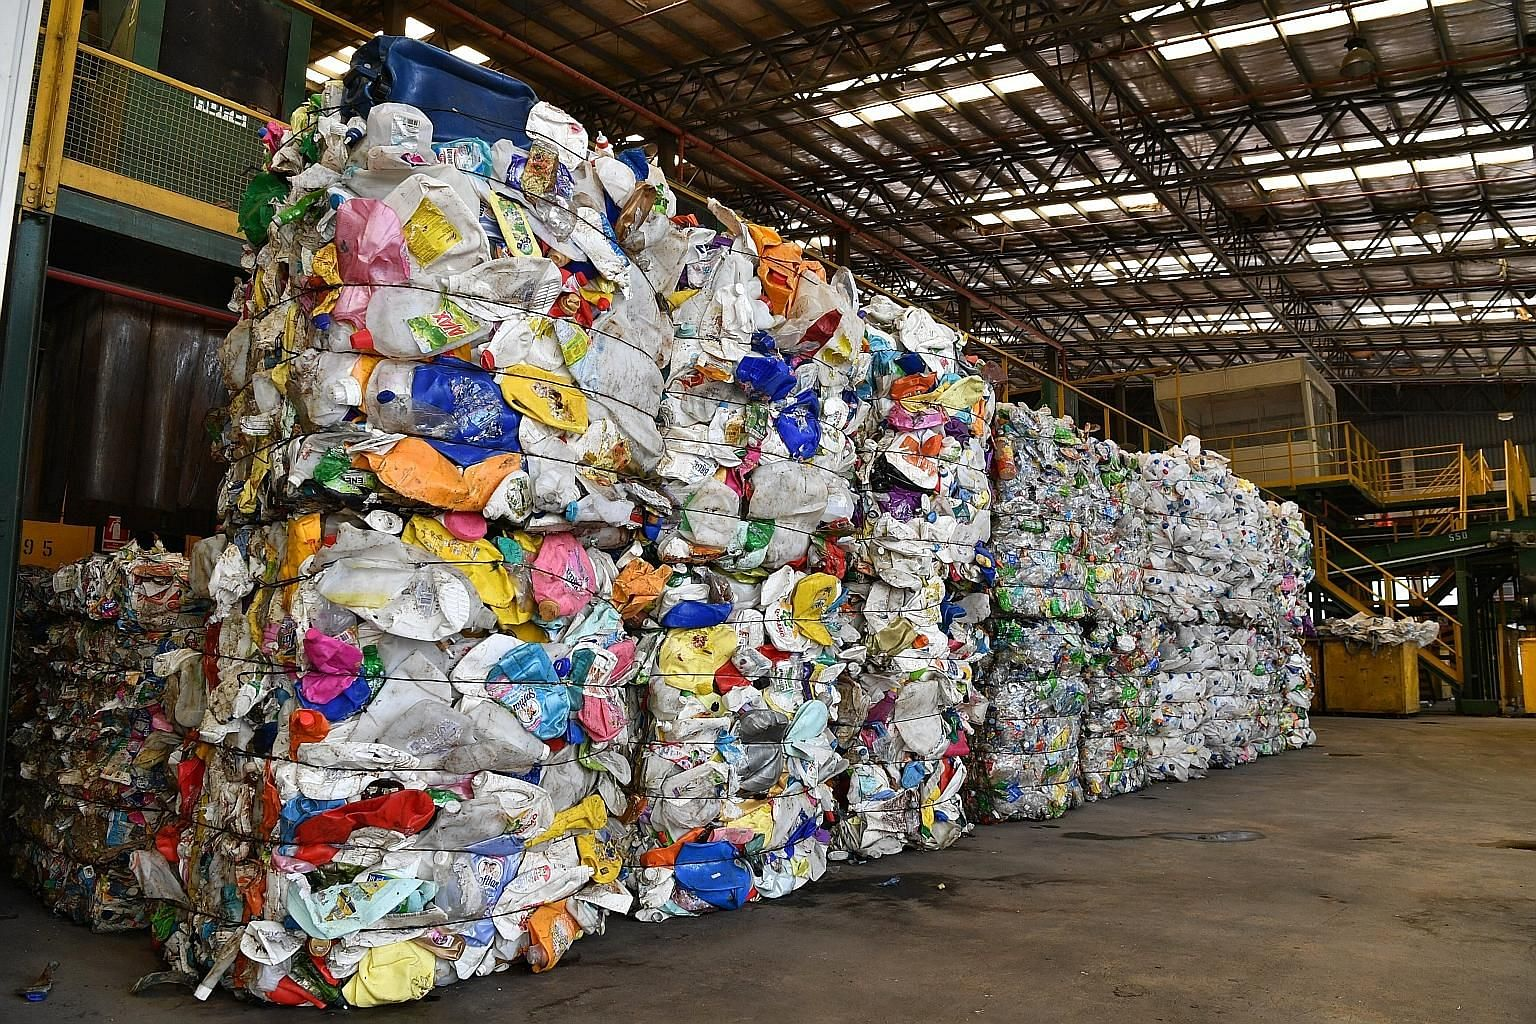 Plastic items meant for recycling. The overall recycling rate fell from 61 per cent in 2017 to 60 per cent last year. This year has been labelled the Year Towards Zero Waste, with the Environment and Water Resources Ministry noting that effecting beh